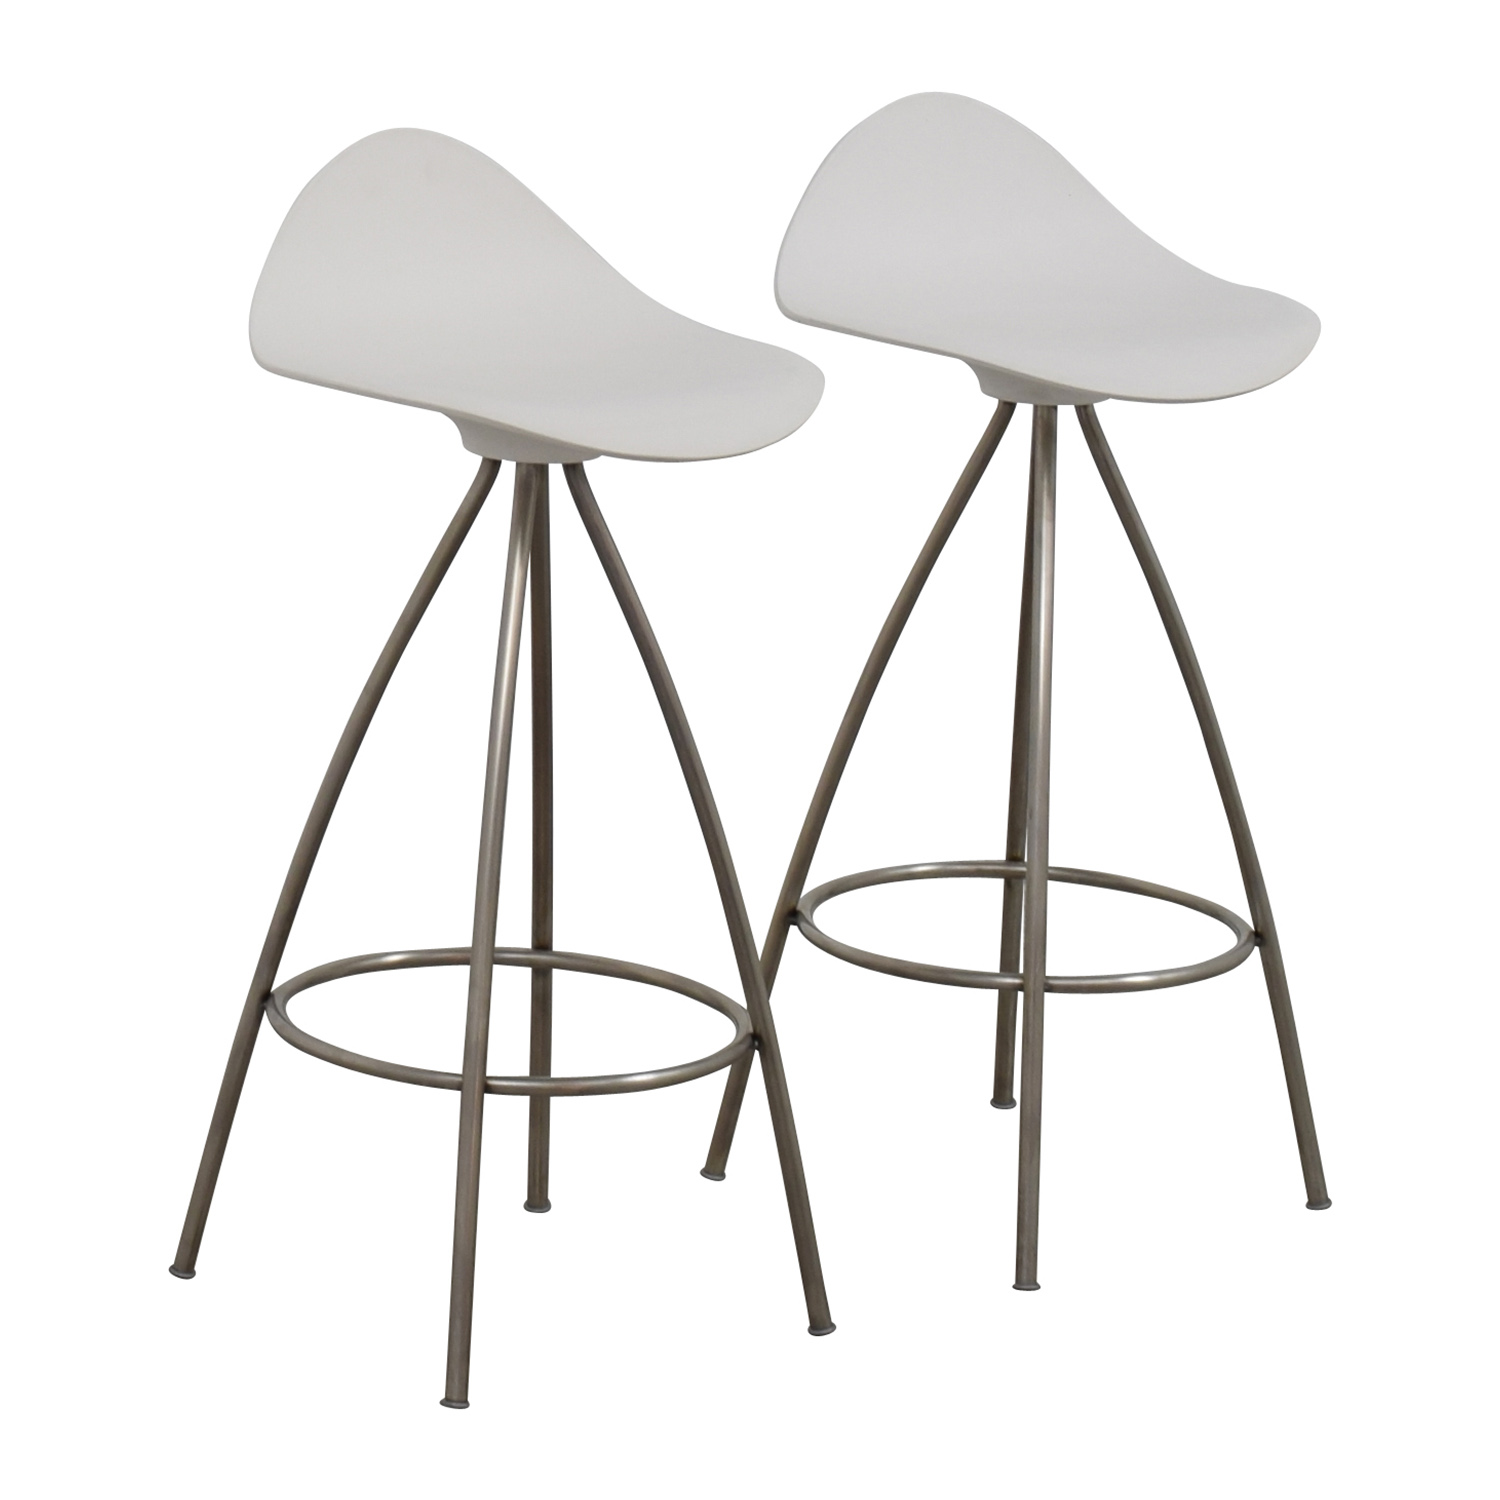 ... Design Within Reach DWR Onda Counter Stool used ...  sc 1 st  Furnishare & 50% OFF - Design Within Reach DWR Onda Counter Stool / Chairs islam-shia.org